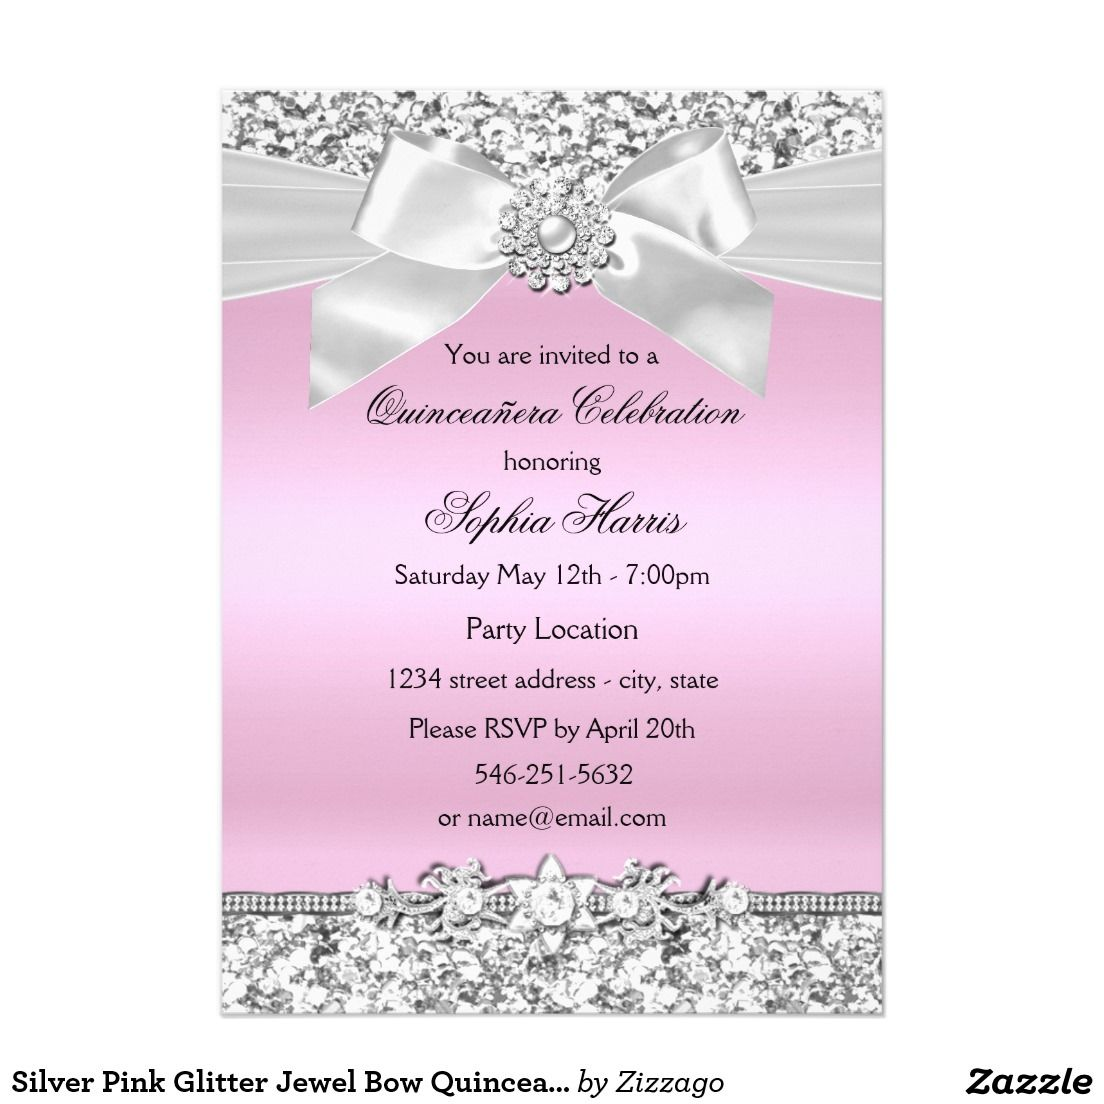 Silver pink glitter jewel bow quinceanera birthday 5x7 paper silver pink glitter jewel bow quinceanera birthday 5x7 paper invitation card stopboris Choice Image